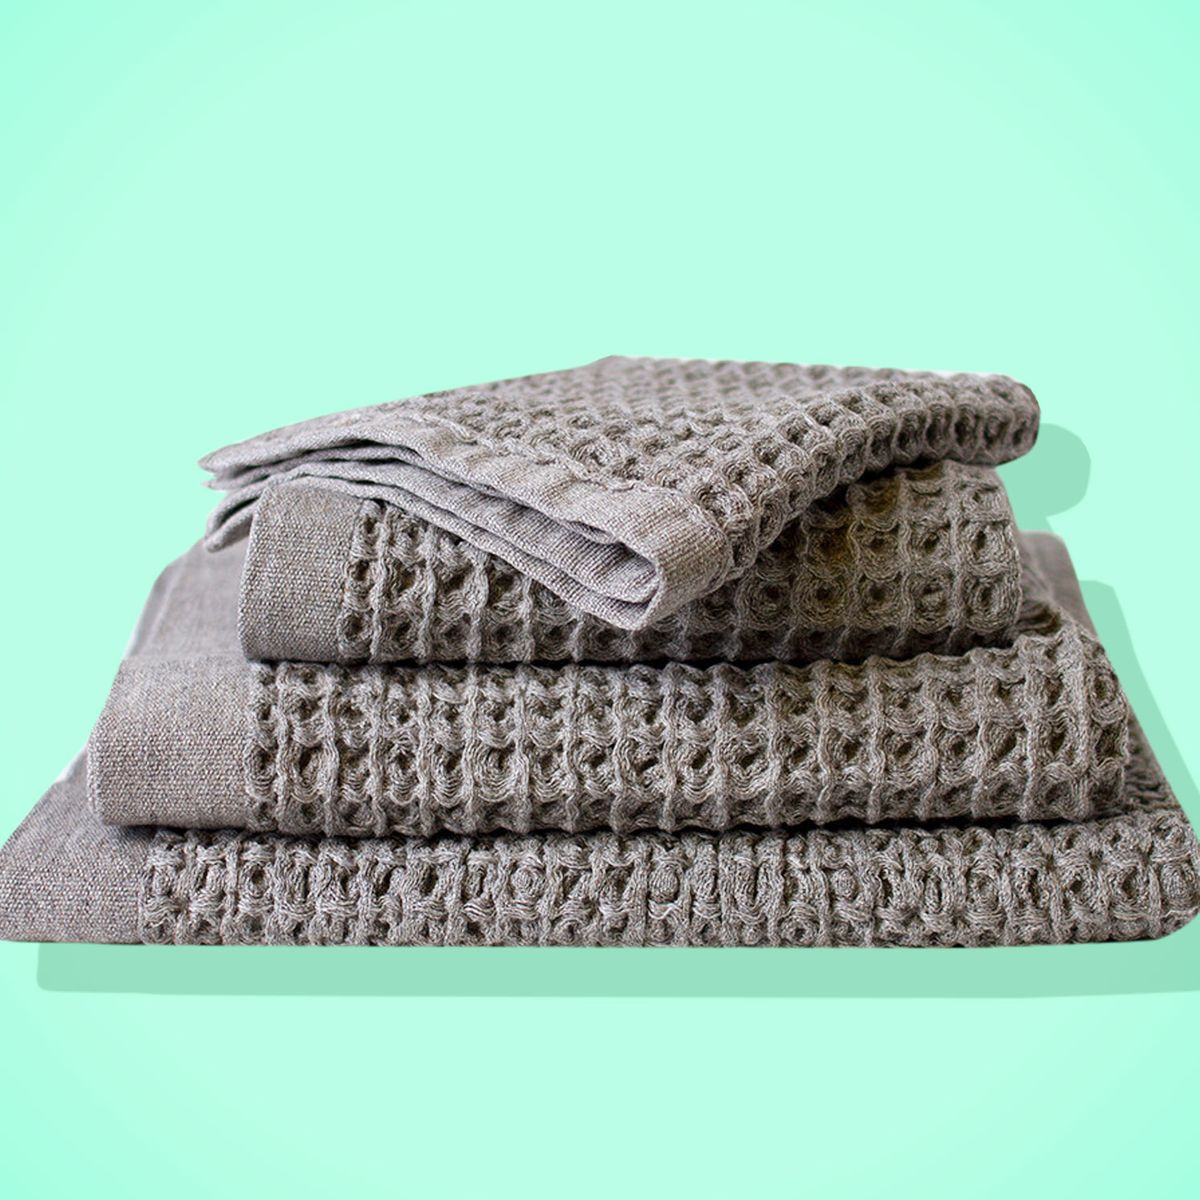 Kontext Japanese Lattice Towels Are The Most Absorbent Towel The Strategist New York Magazine